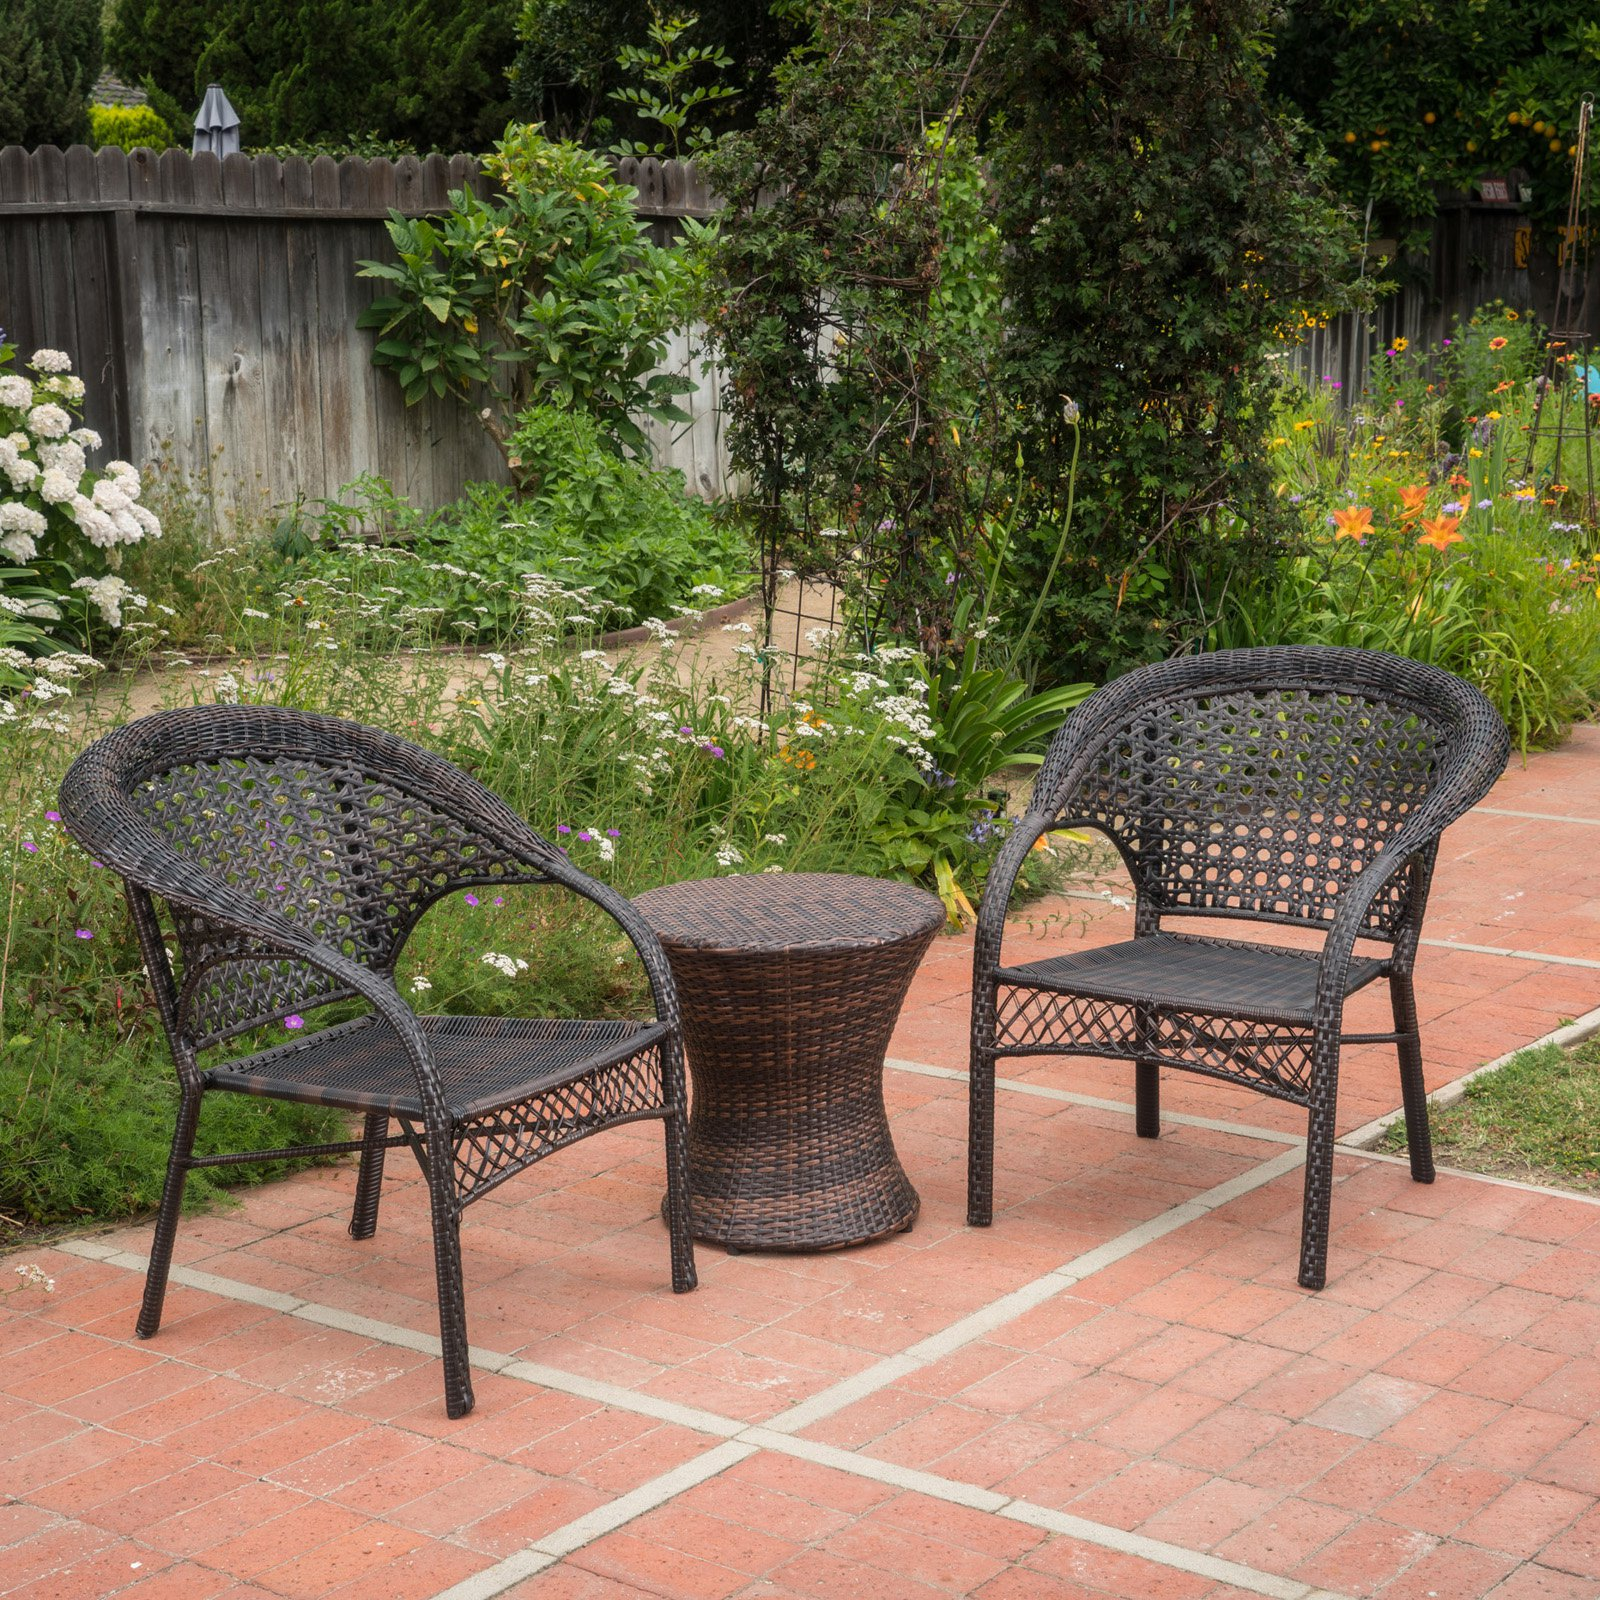 Monroe Wicker 3 Piece Outdoor Stacking Chair Chat Set